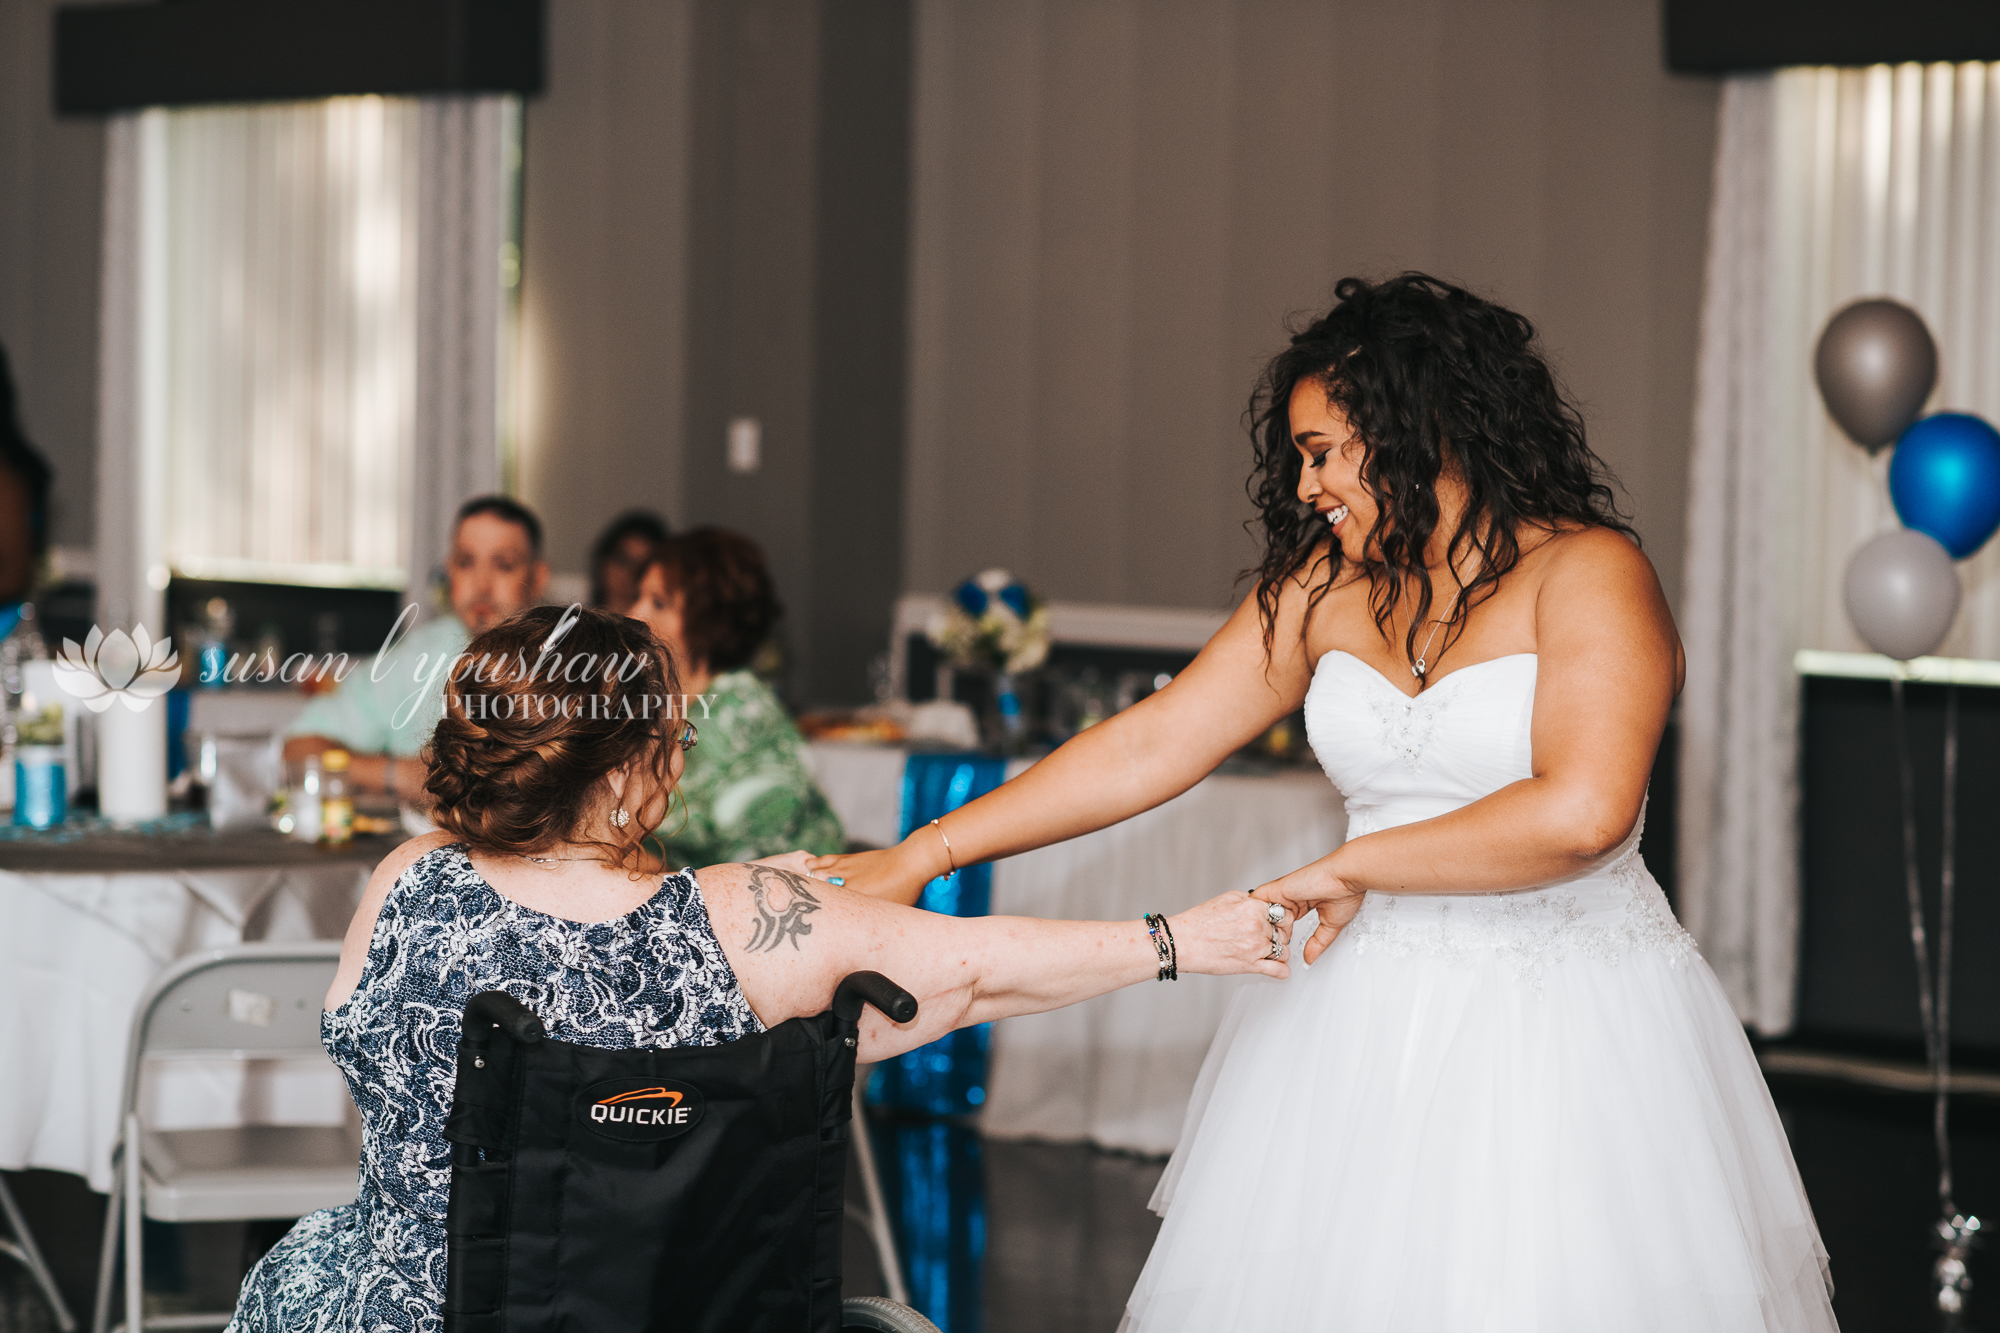 Katelyn and Wes Wedding Photos 07-13-2019 SLY Photography-123.jpg